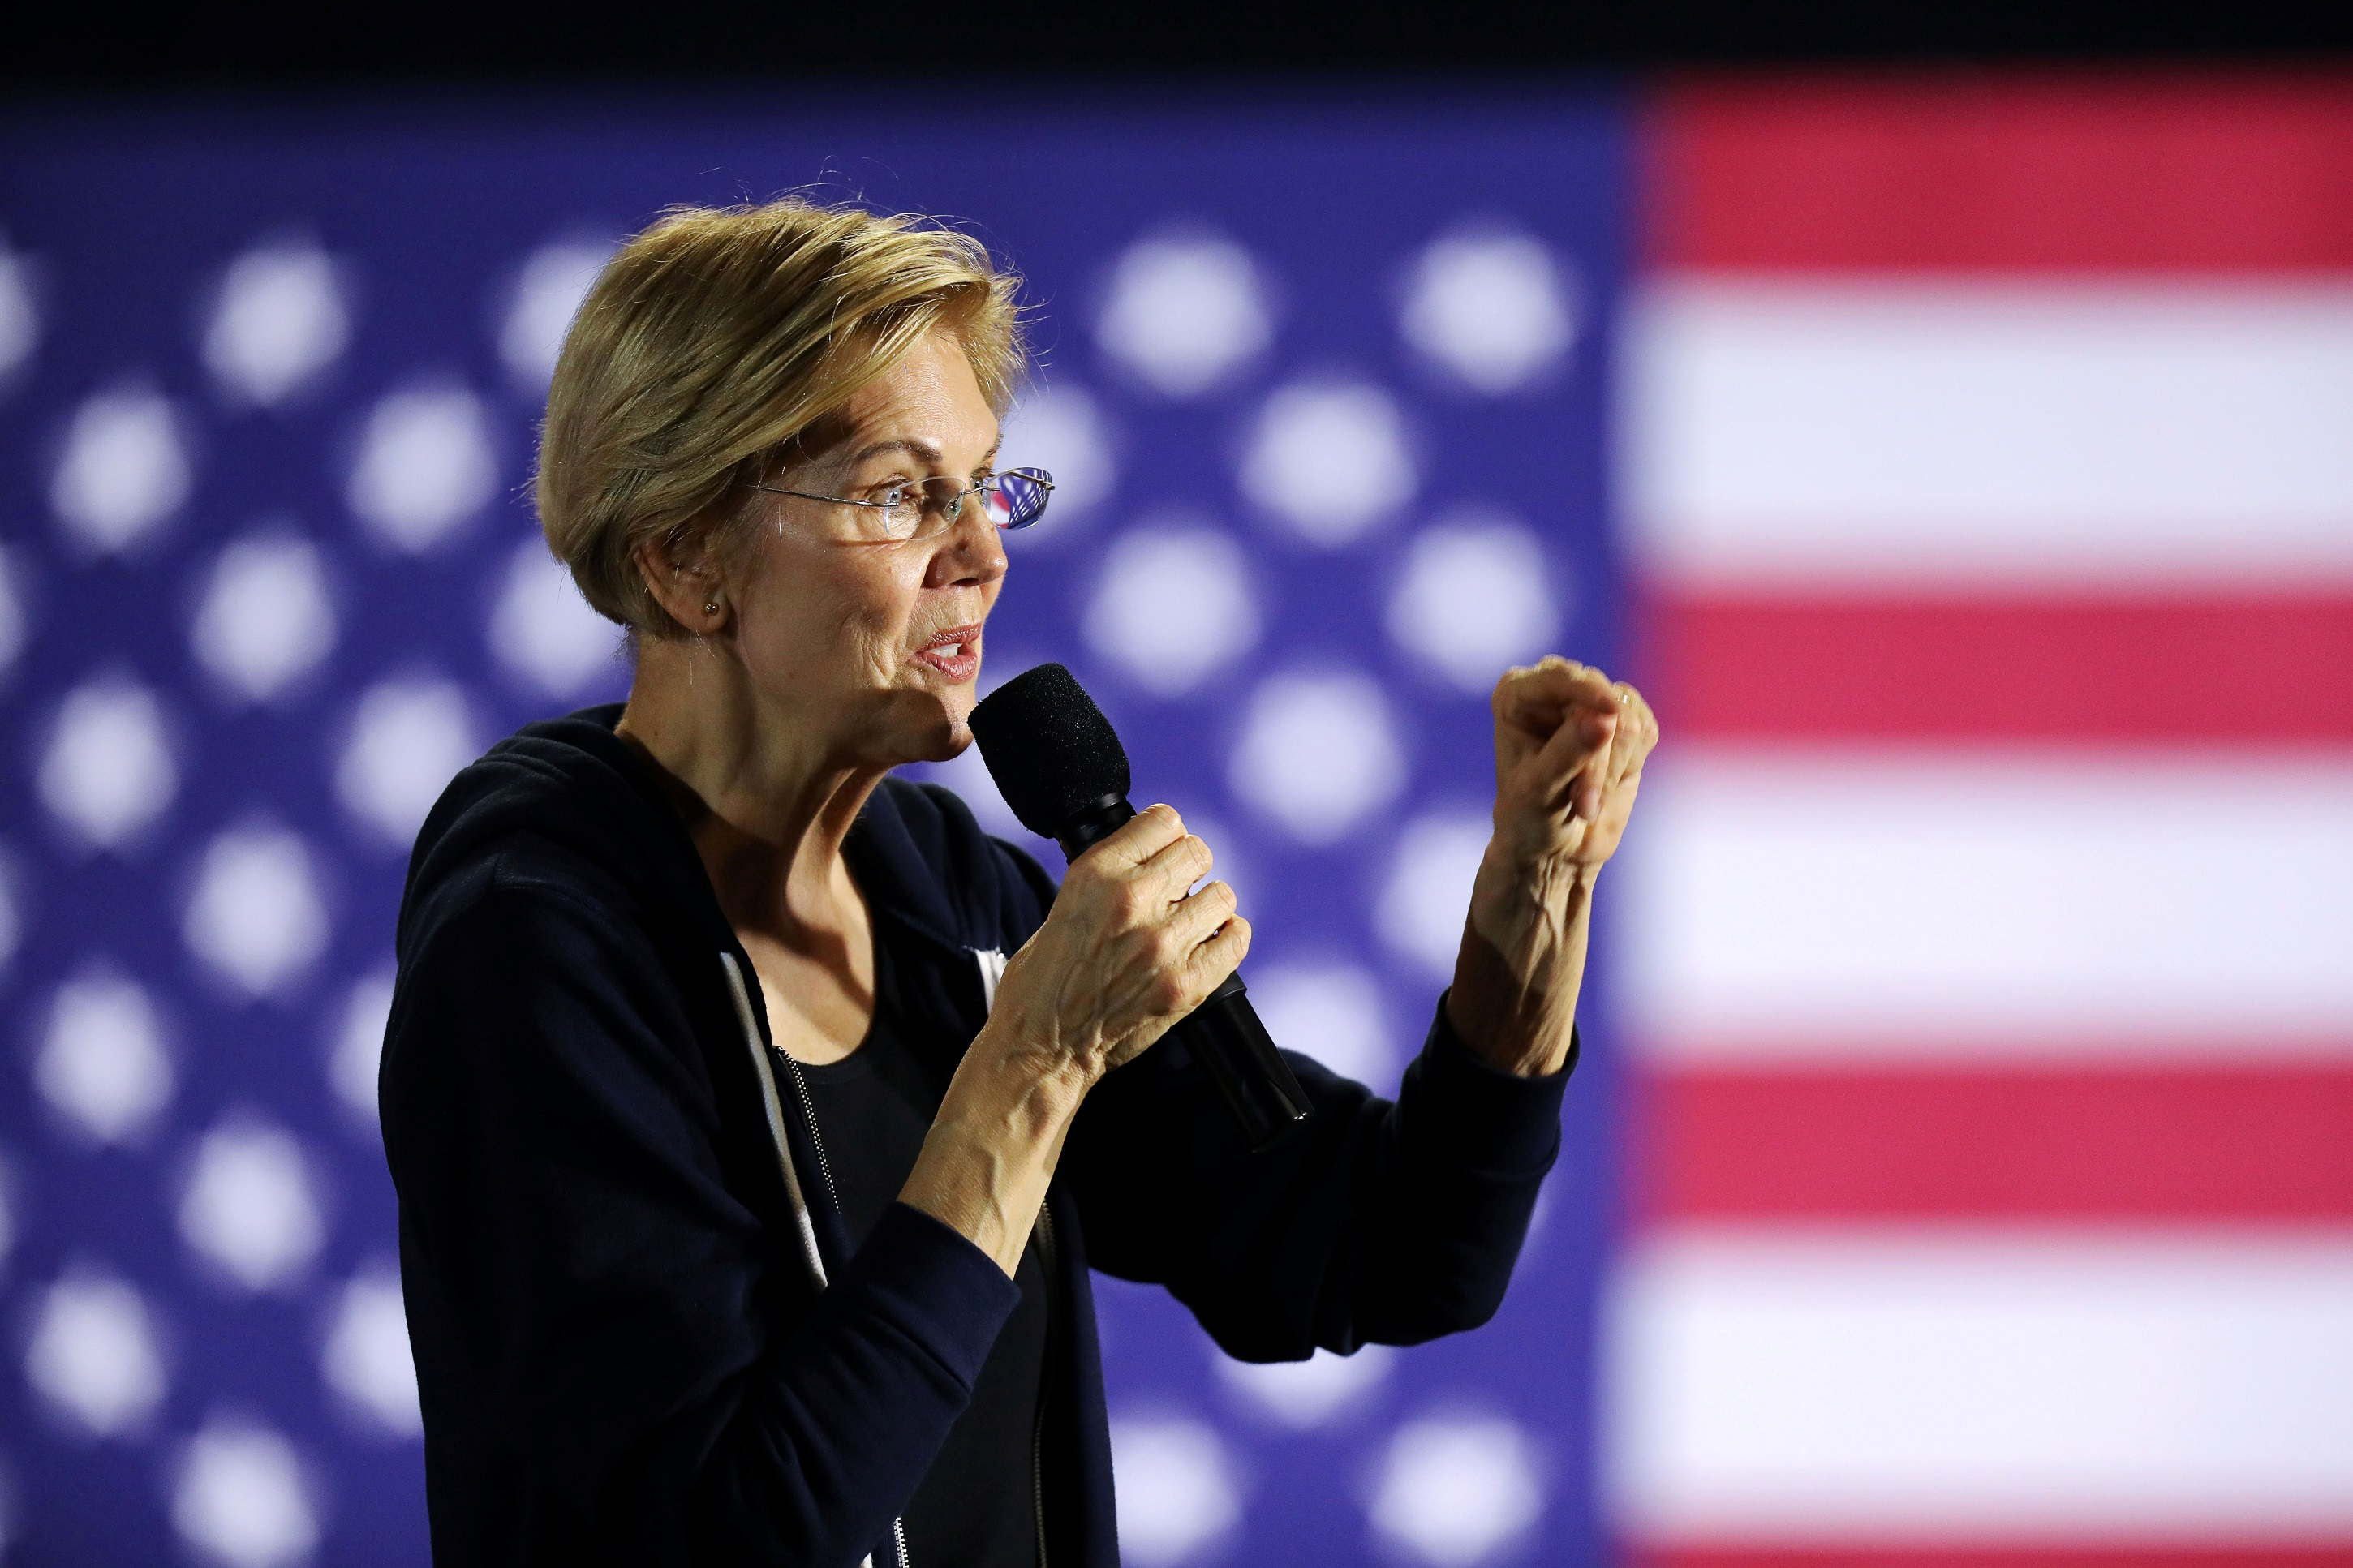 Warren's Wealth Tax Would Raise $1 Trillion Less Than Campaign Claims: Study